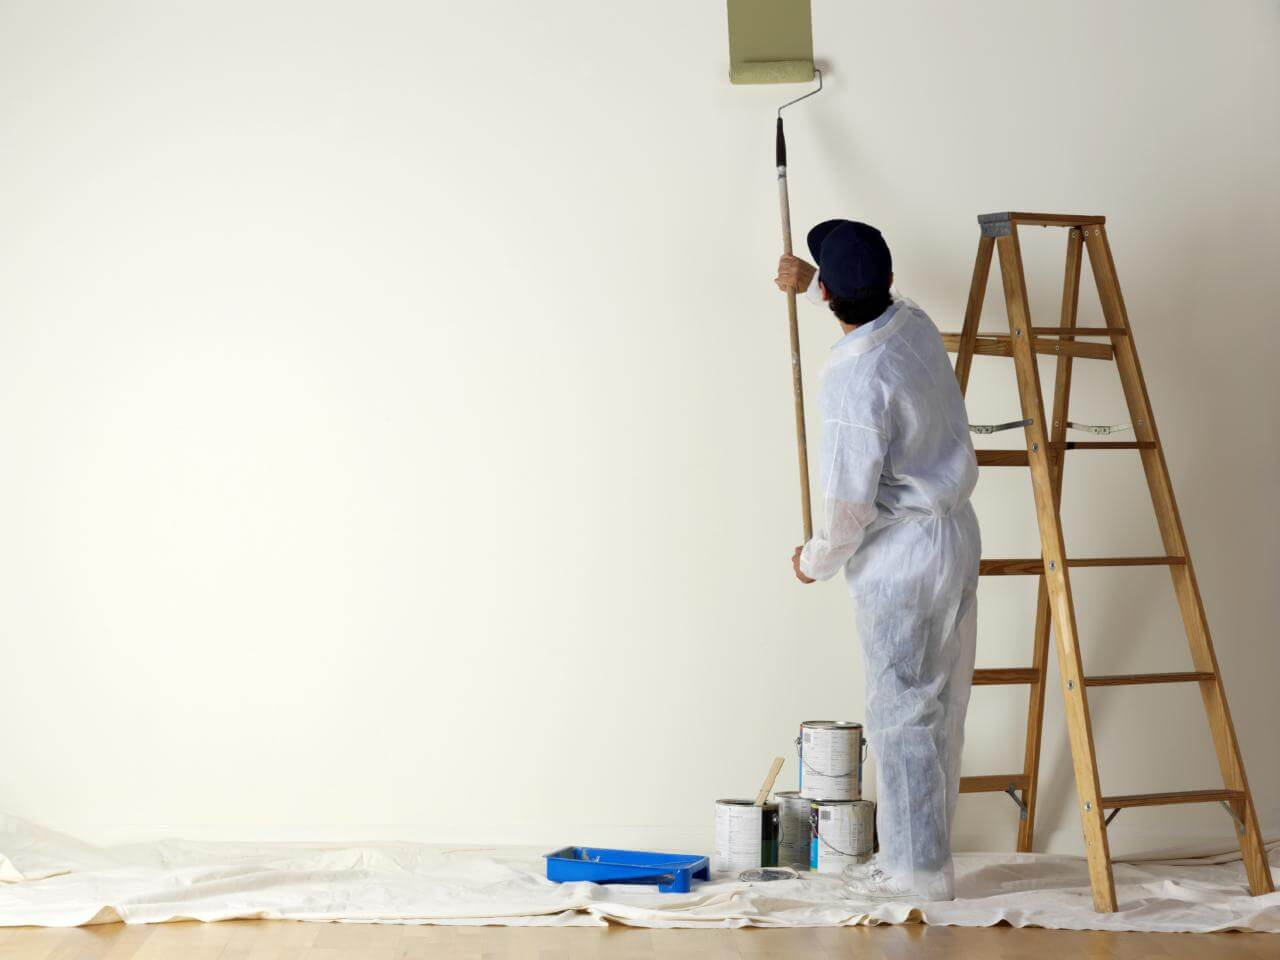 Painting over walls in your home is a great way to boost value